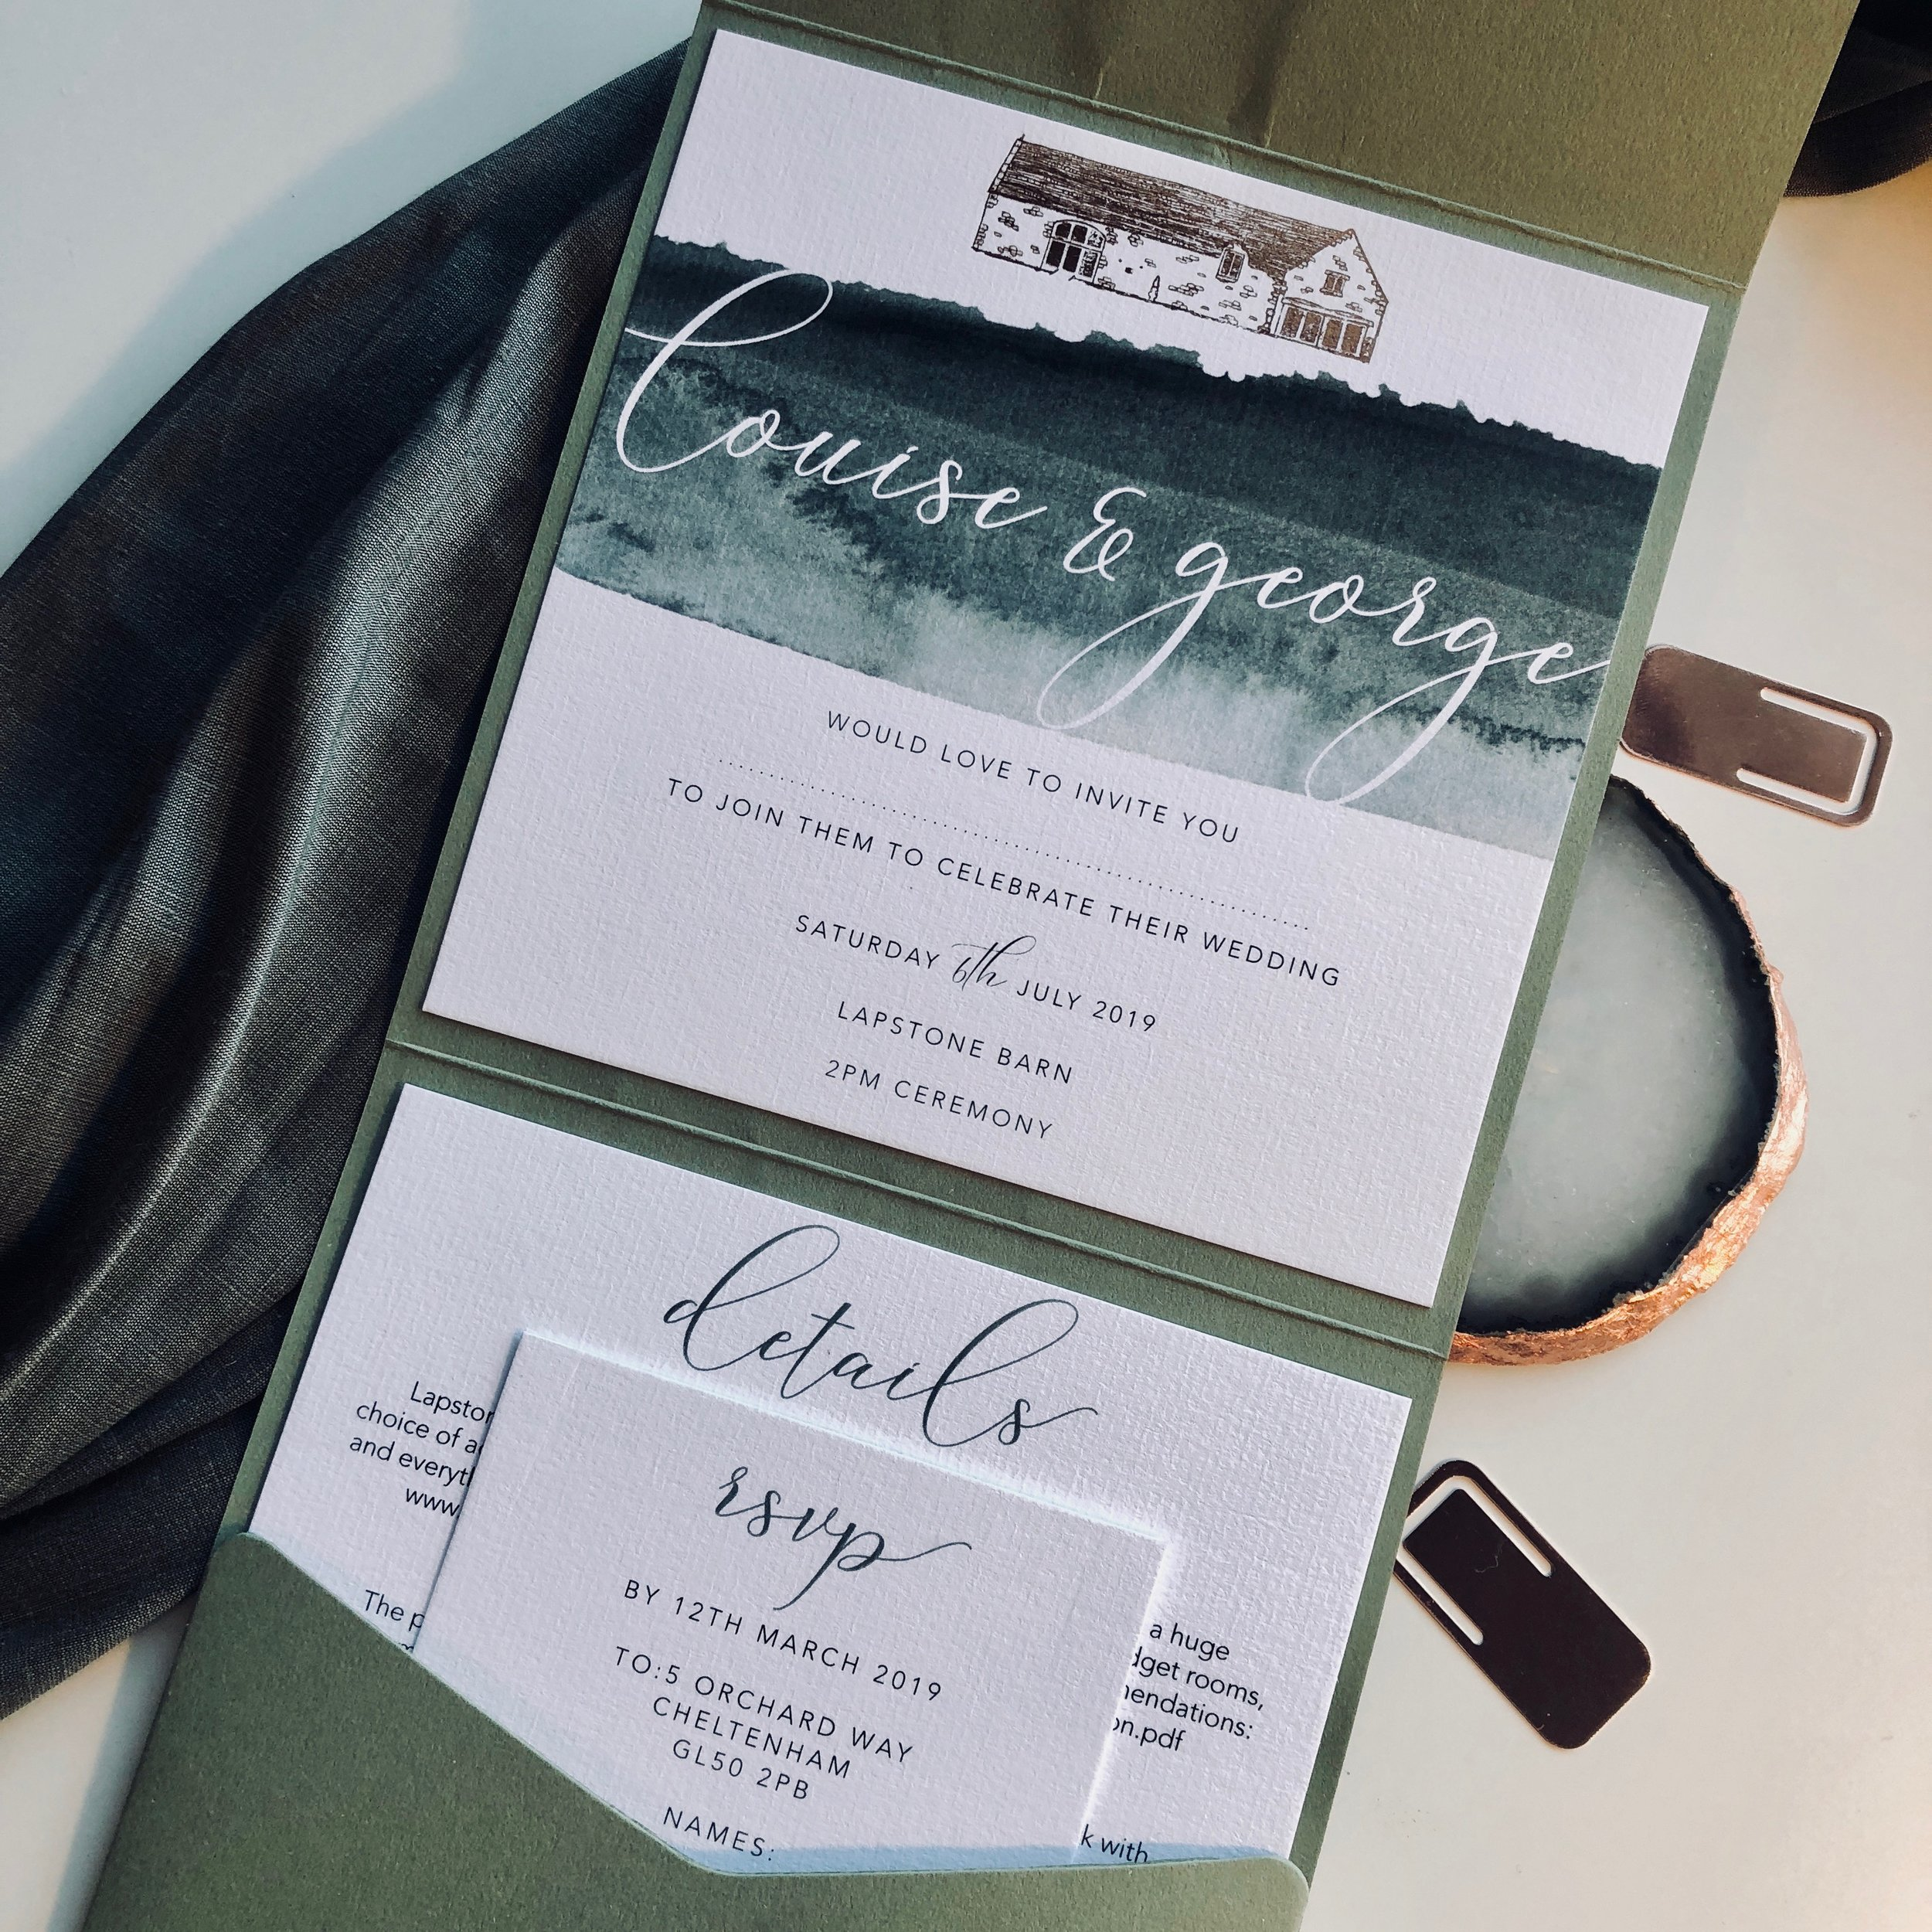 Lapstone Barn Wedding Invitation